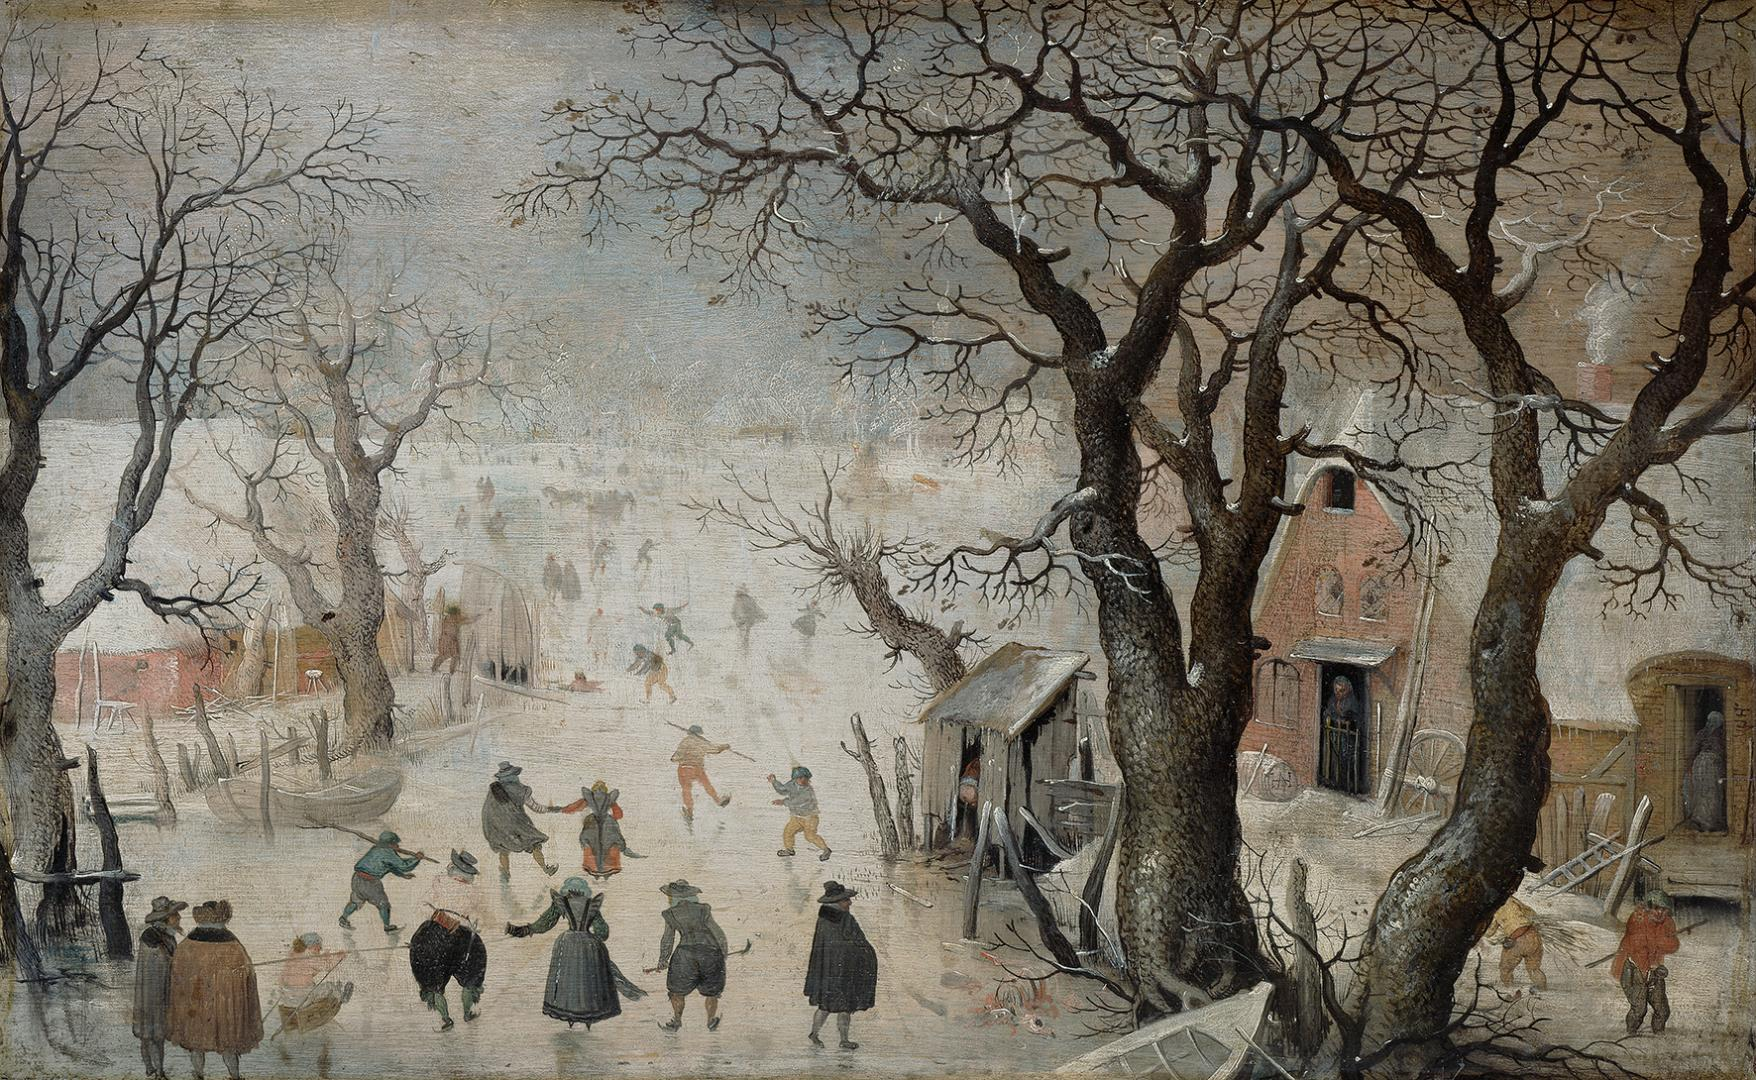 Hendrik Avercamp, Winter Landscape, 1605, Oil on oak wood, Kunsthistorisches Museum, Vienna, © KHM-Museumsverband – a memory of the time when winters in Europe were invariably cold.